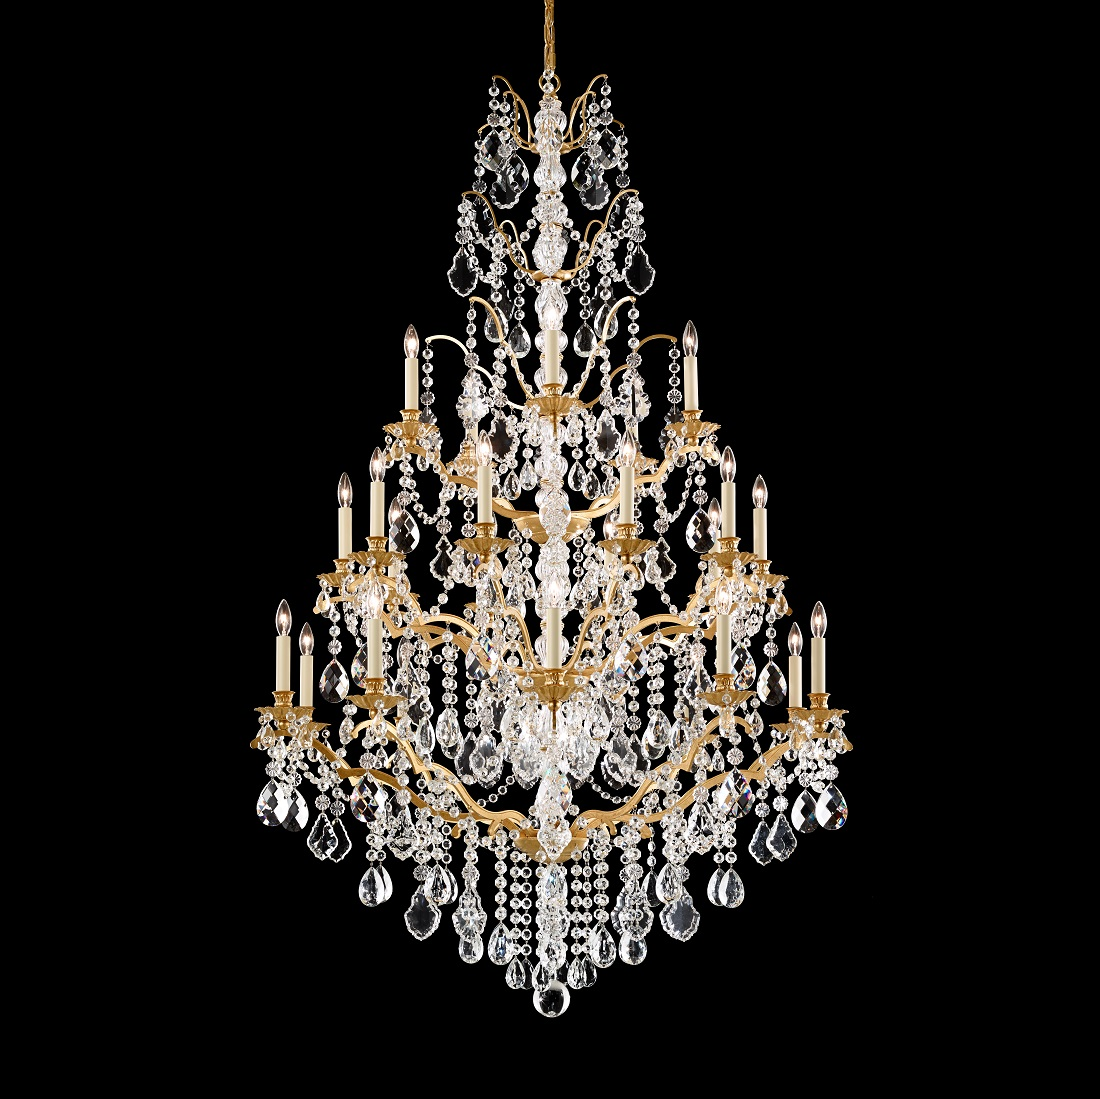 Schonbek Modern Crystal Chandelier for Dining Room Brooklyn,New York